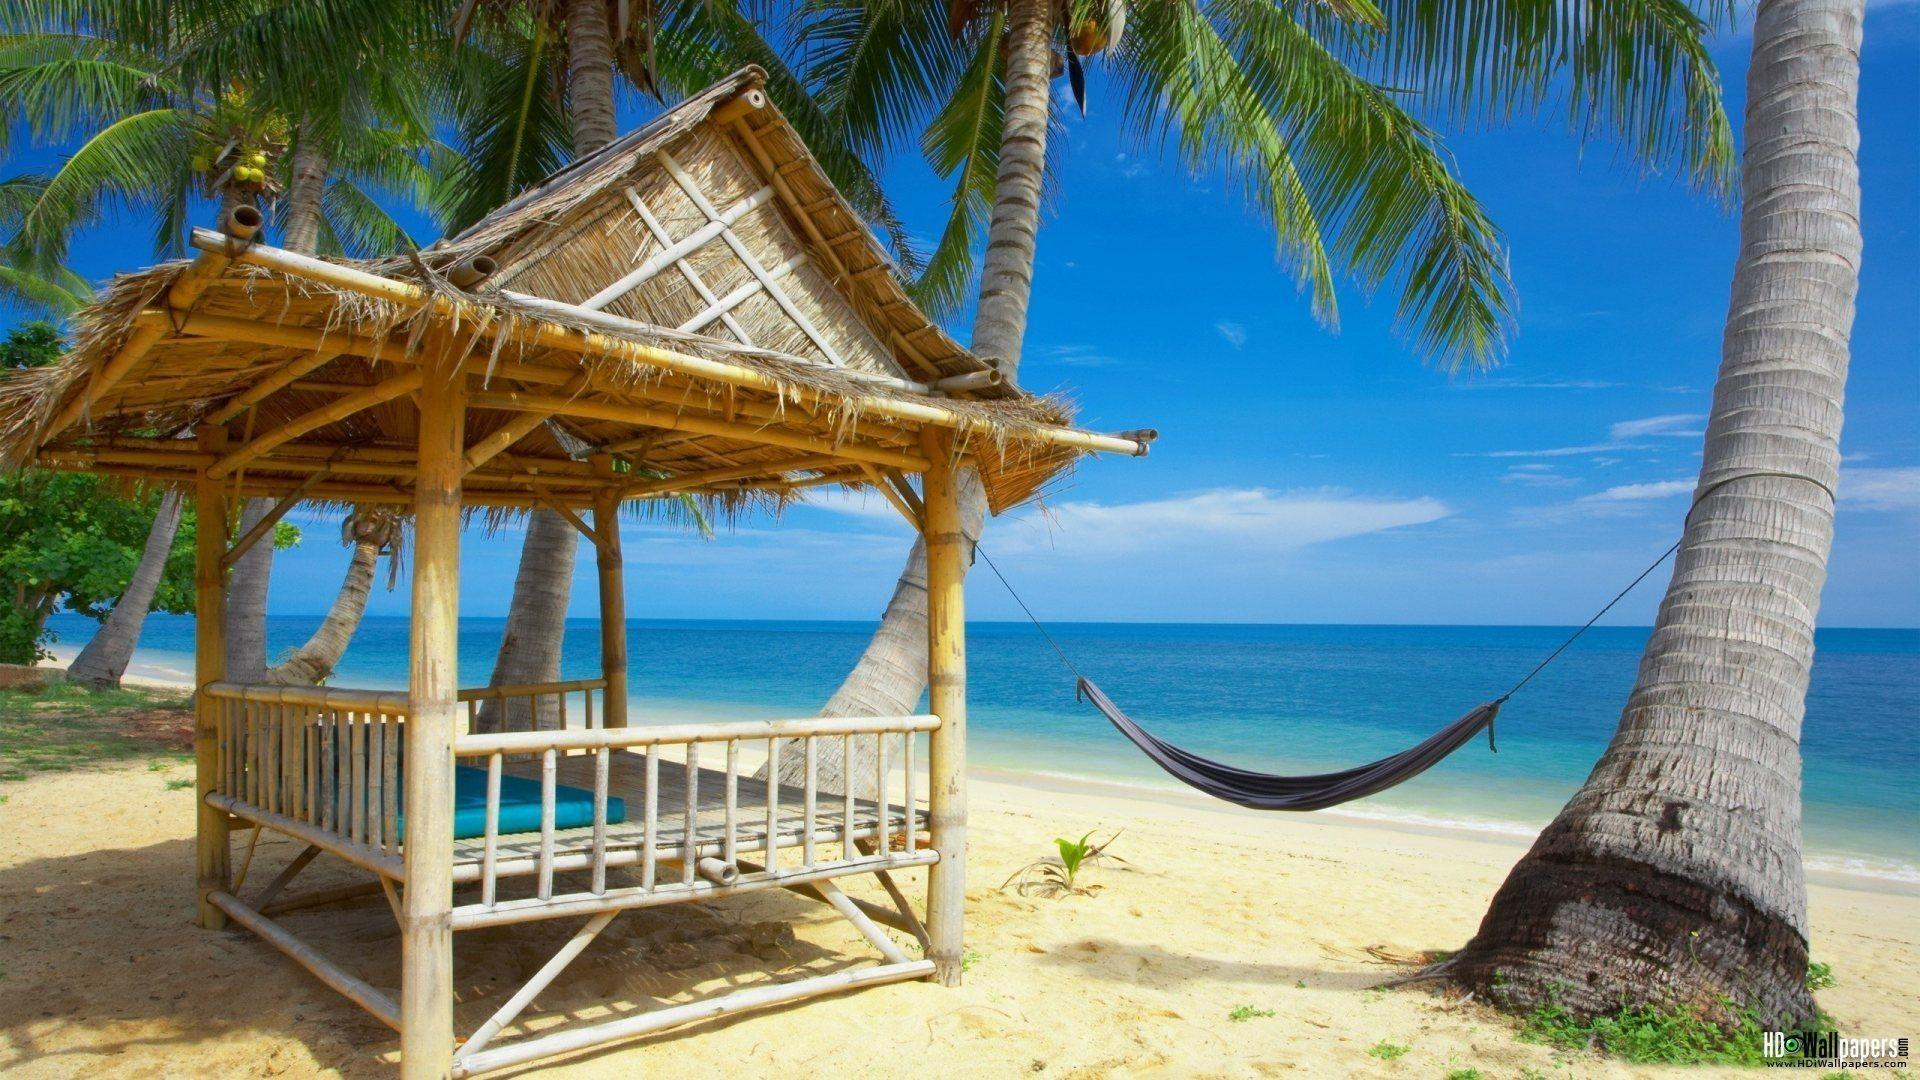 Tropical Beach Resort Wallpapers for Desktop Background Full ...